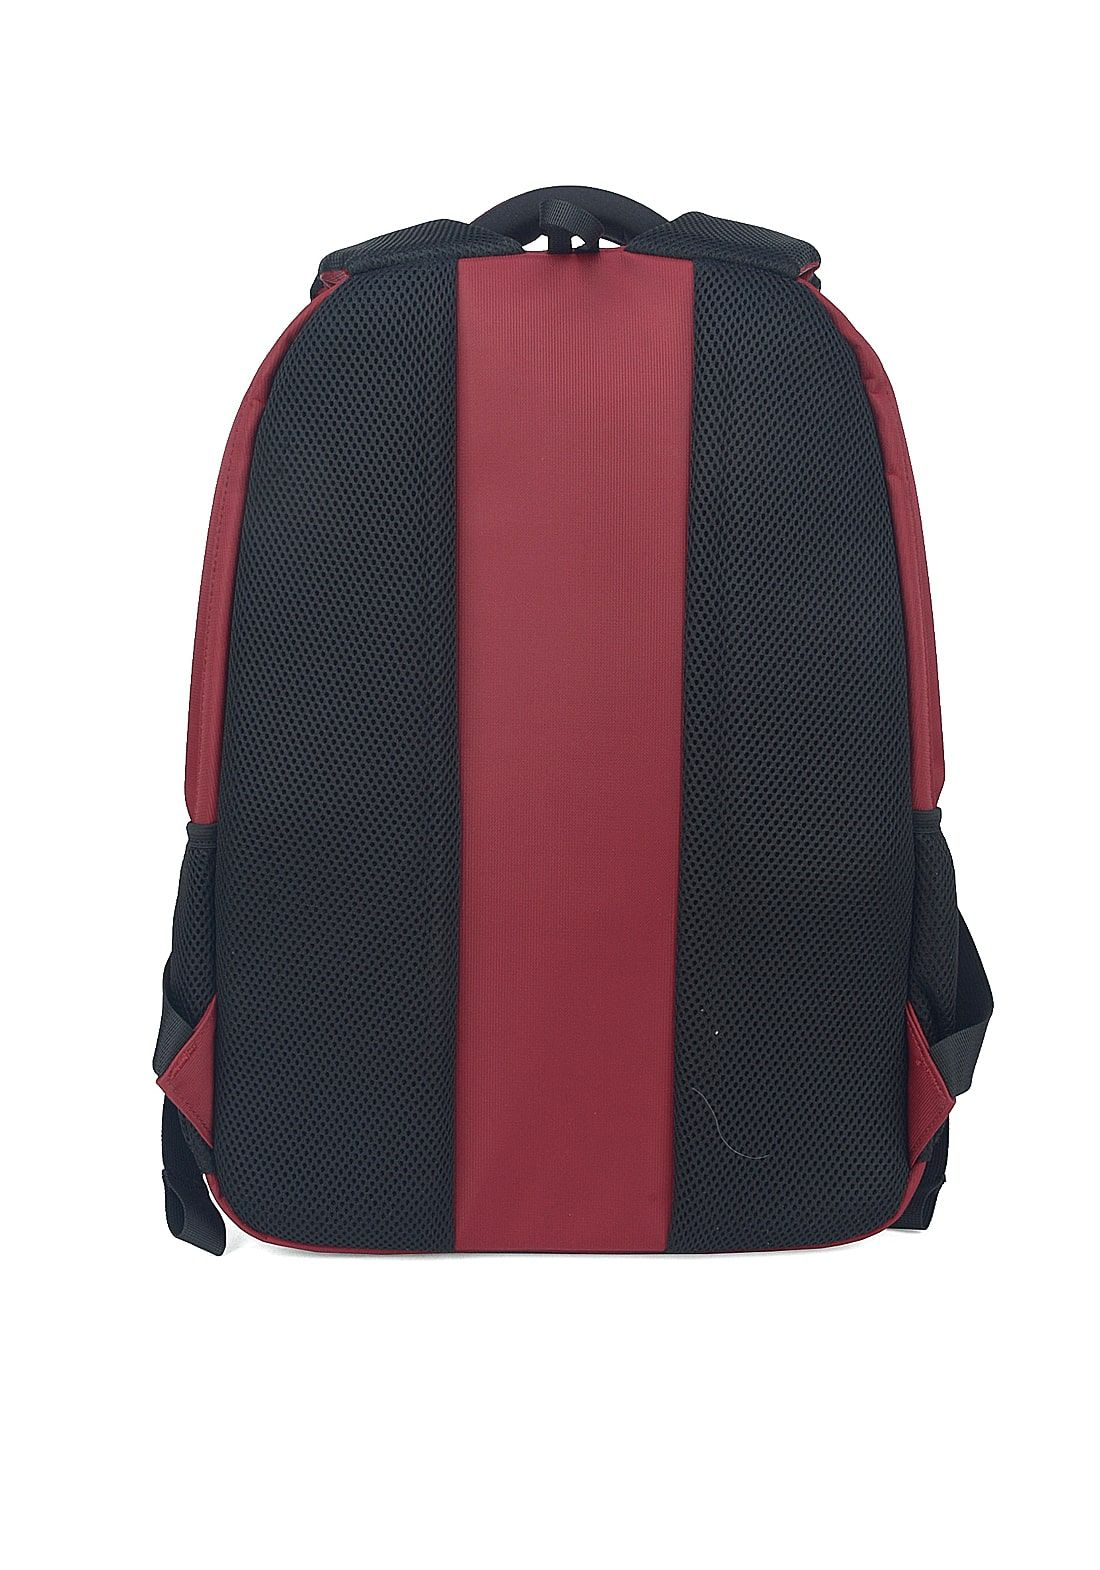 Mochila Executiva Notebook Polo King Vermelha Original